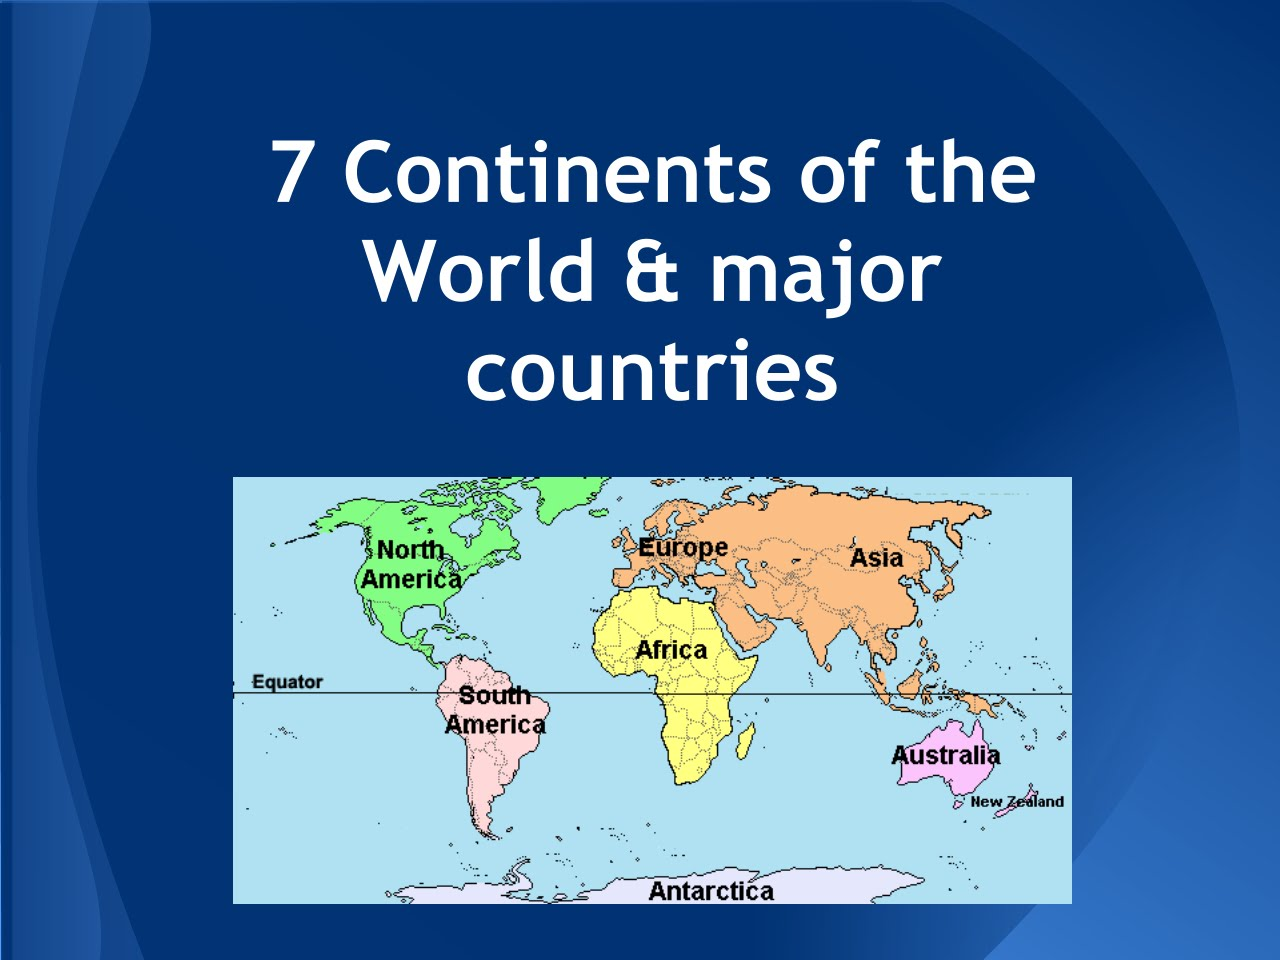 Evan Nichelson : My Presentation: 7 continents of the world